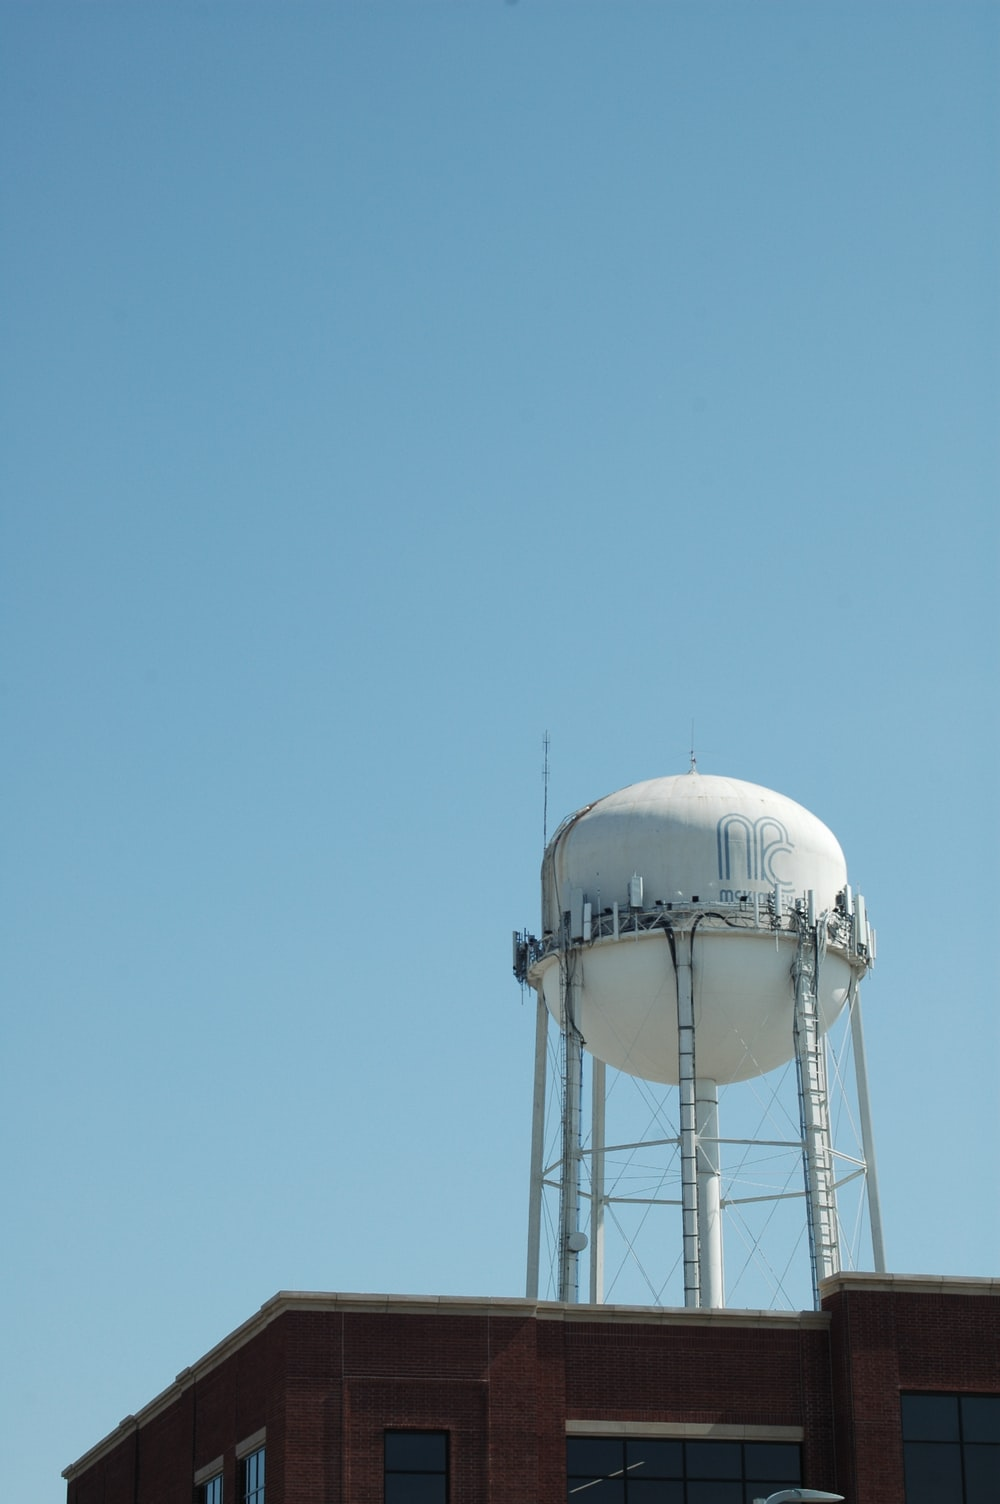 white and gray water tank under blue sky during daytime